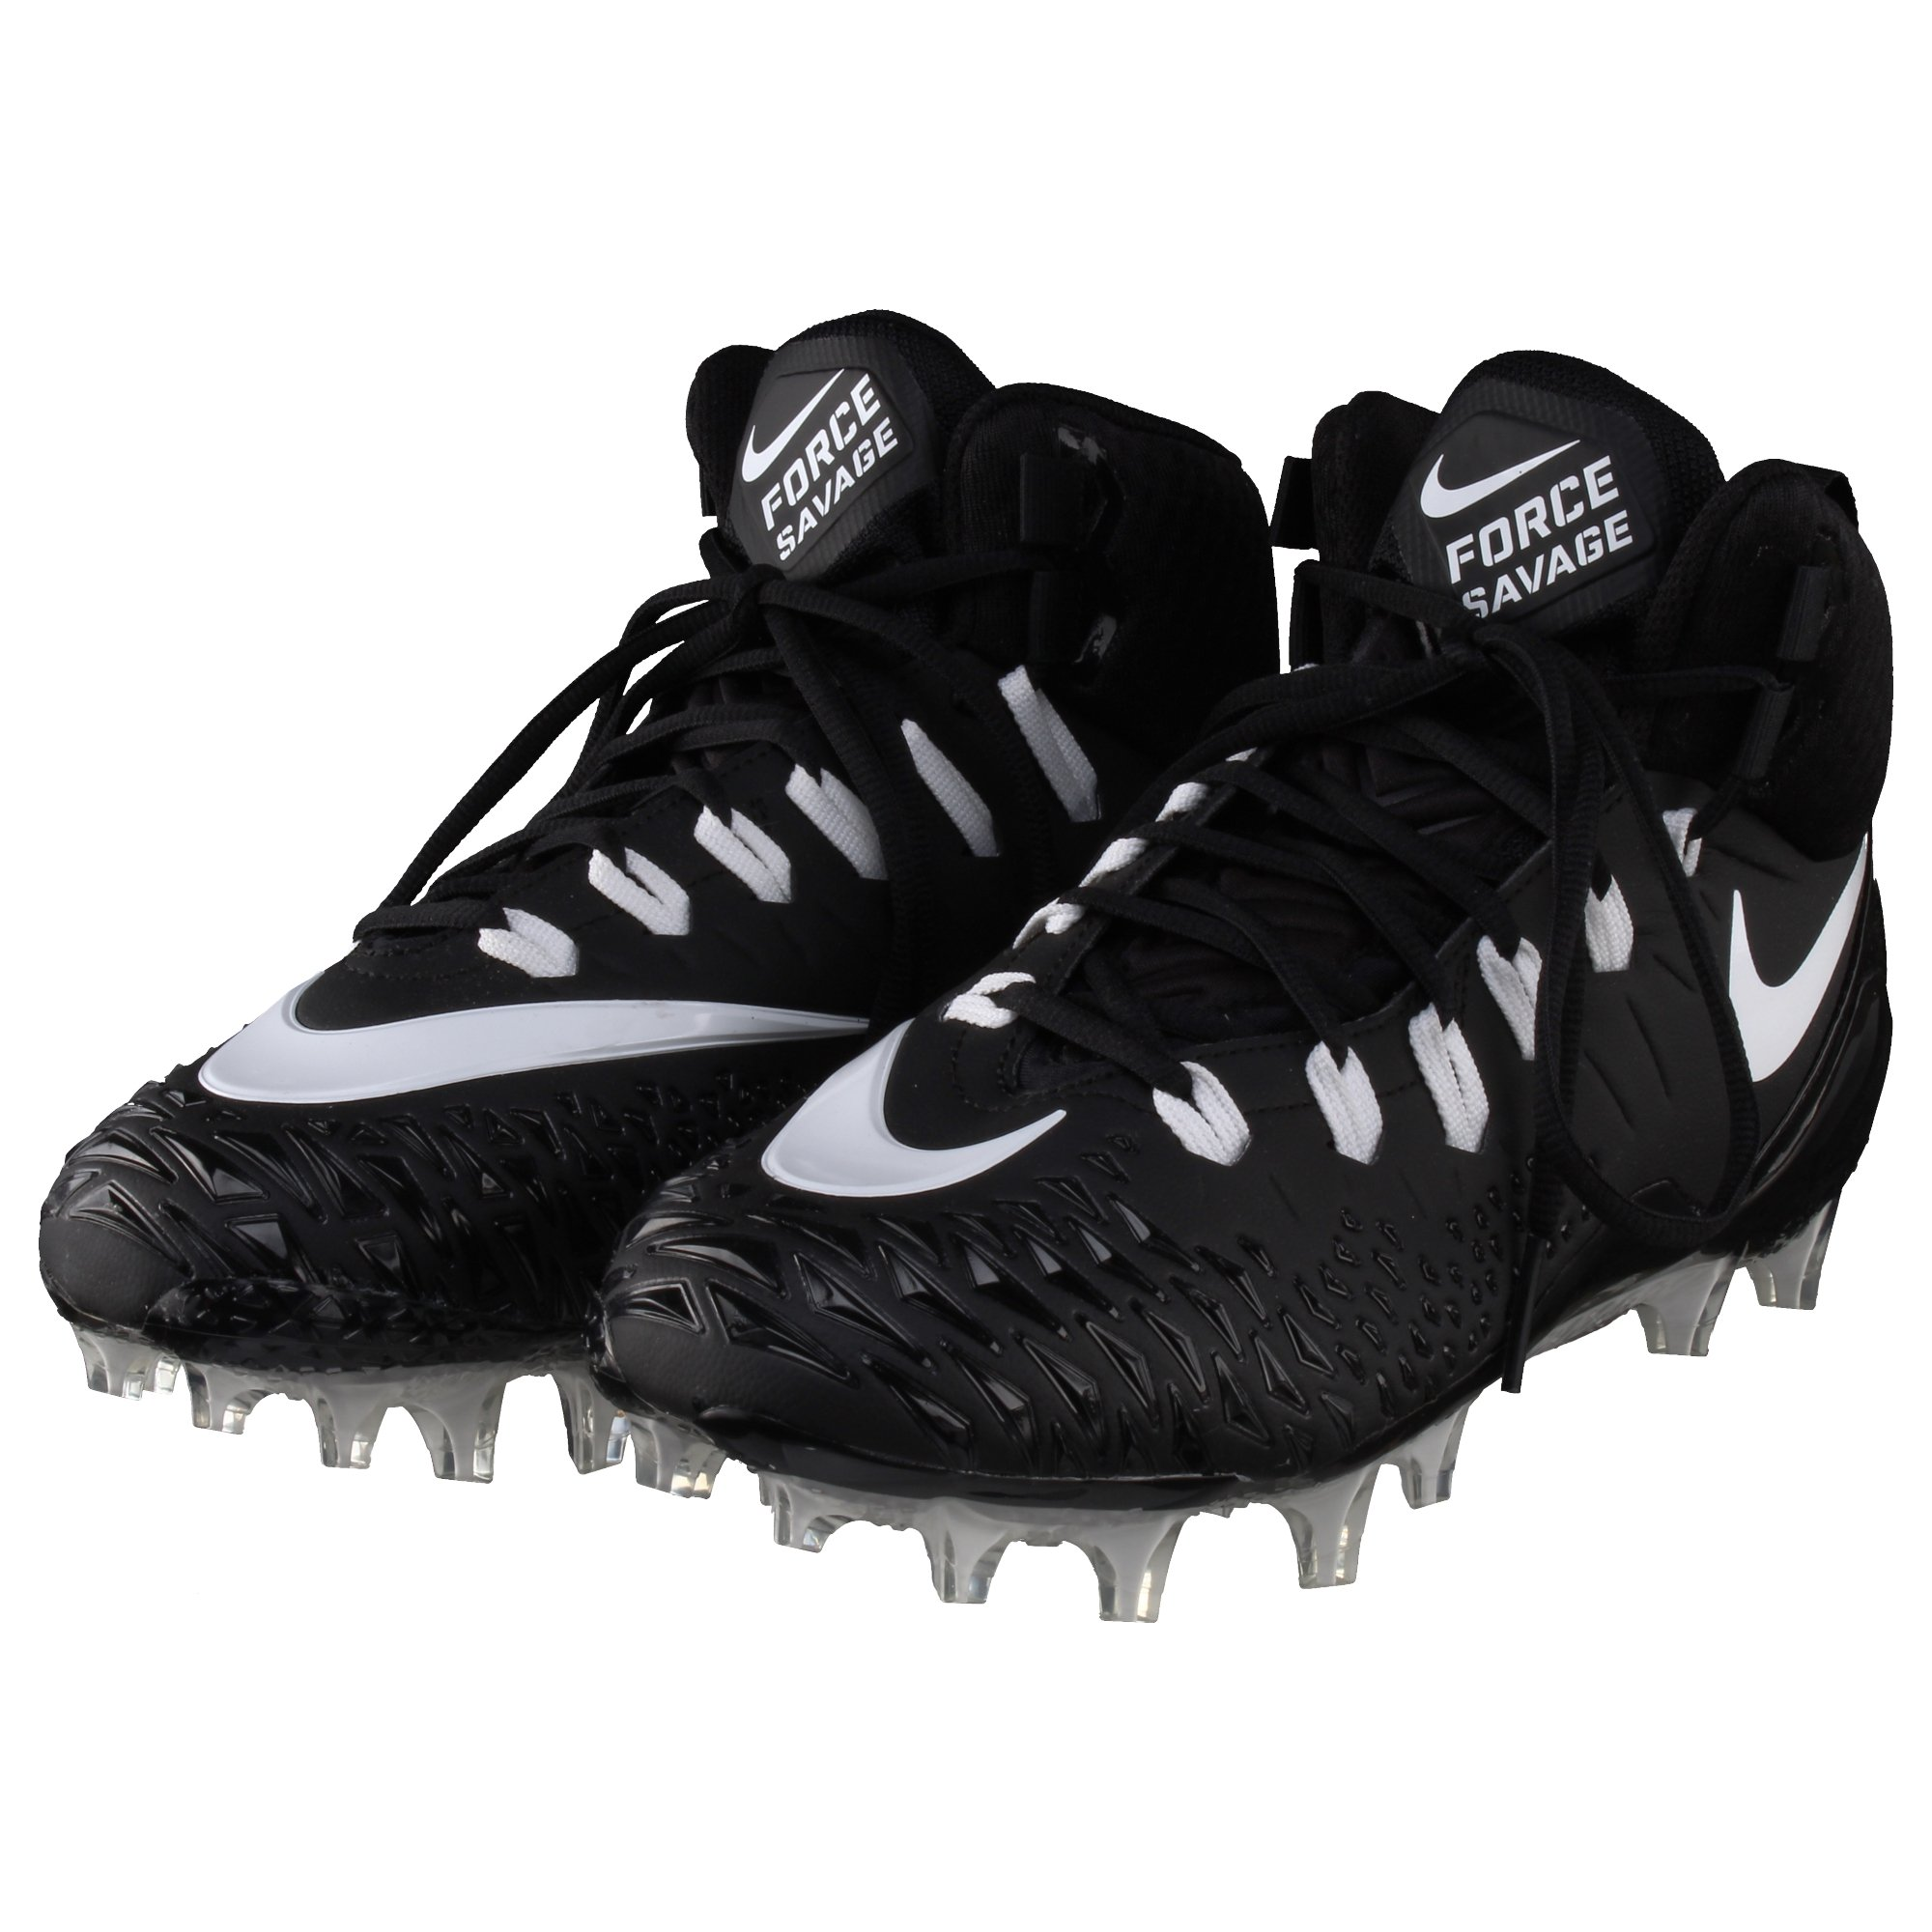 5059c7f67758 Details about NIKE Force Savage Elite TD (Wide) Football Cleats Size 12, 14  NIB